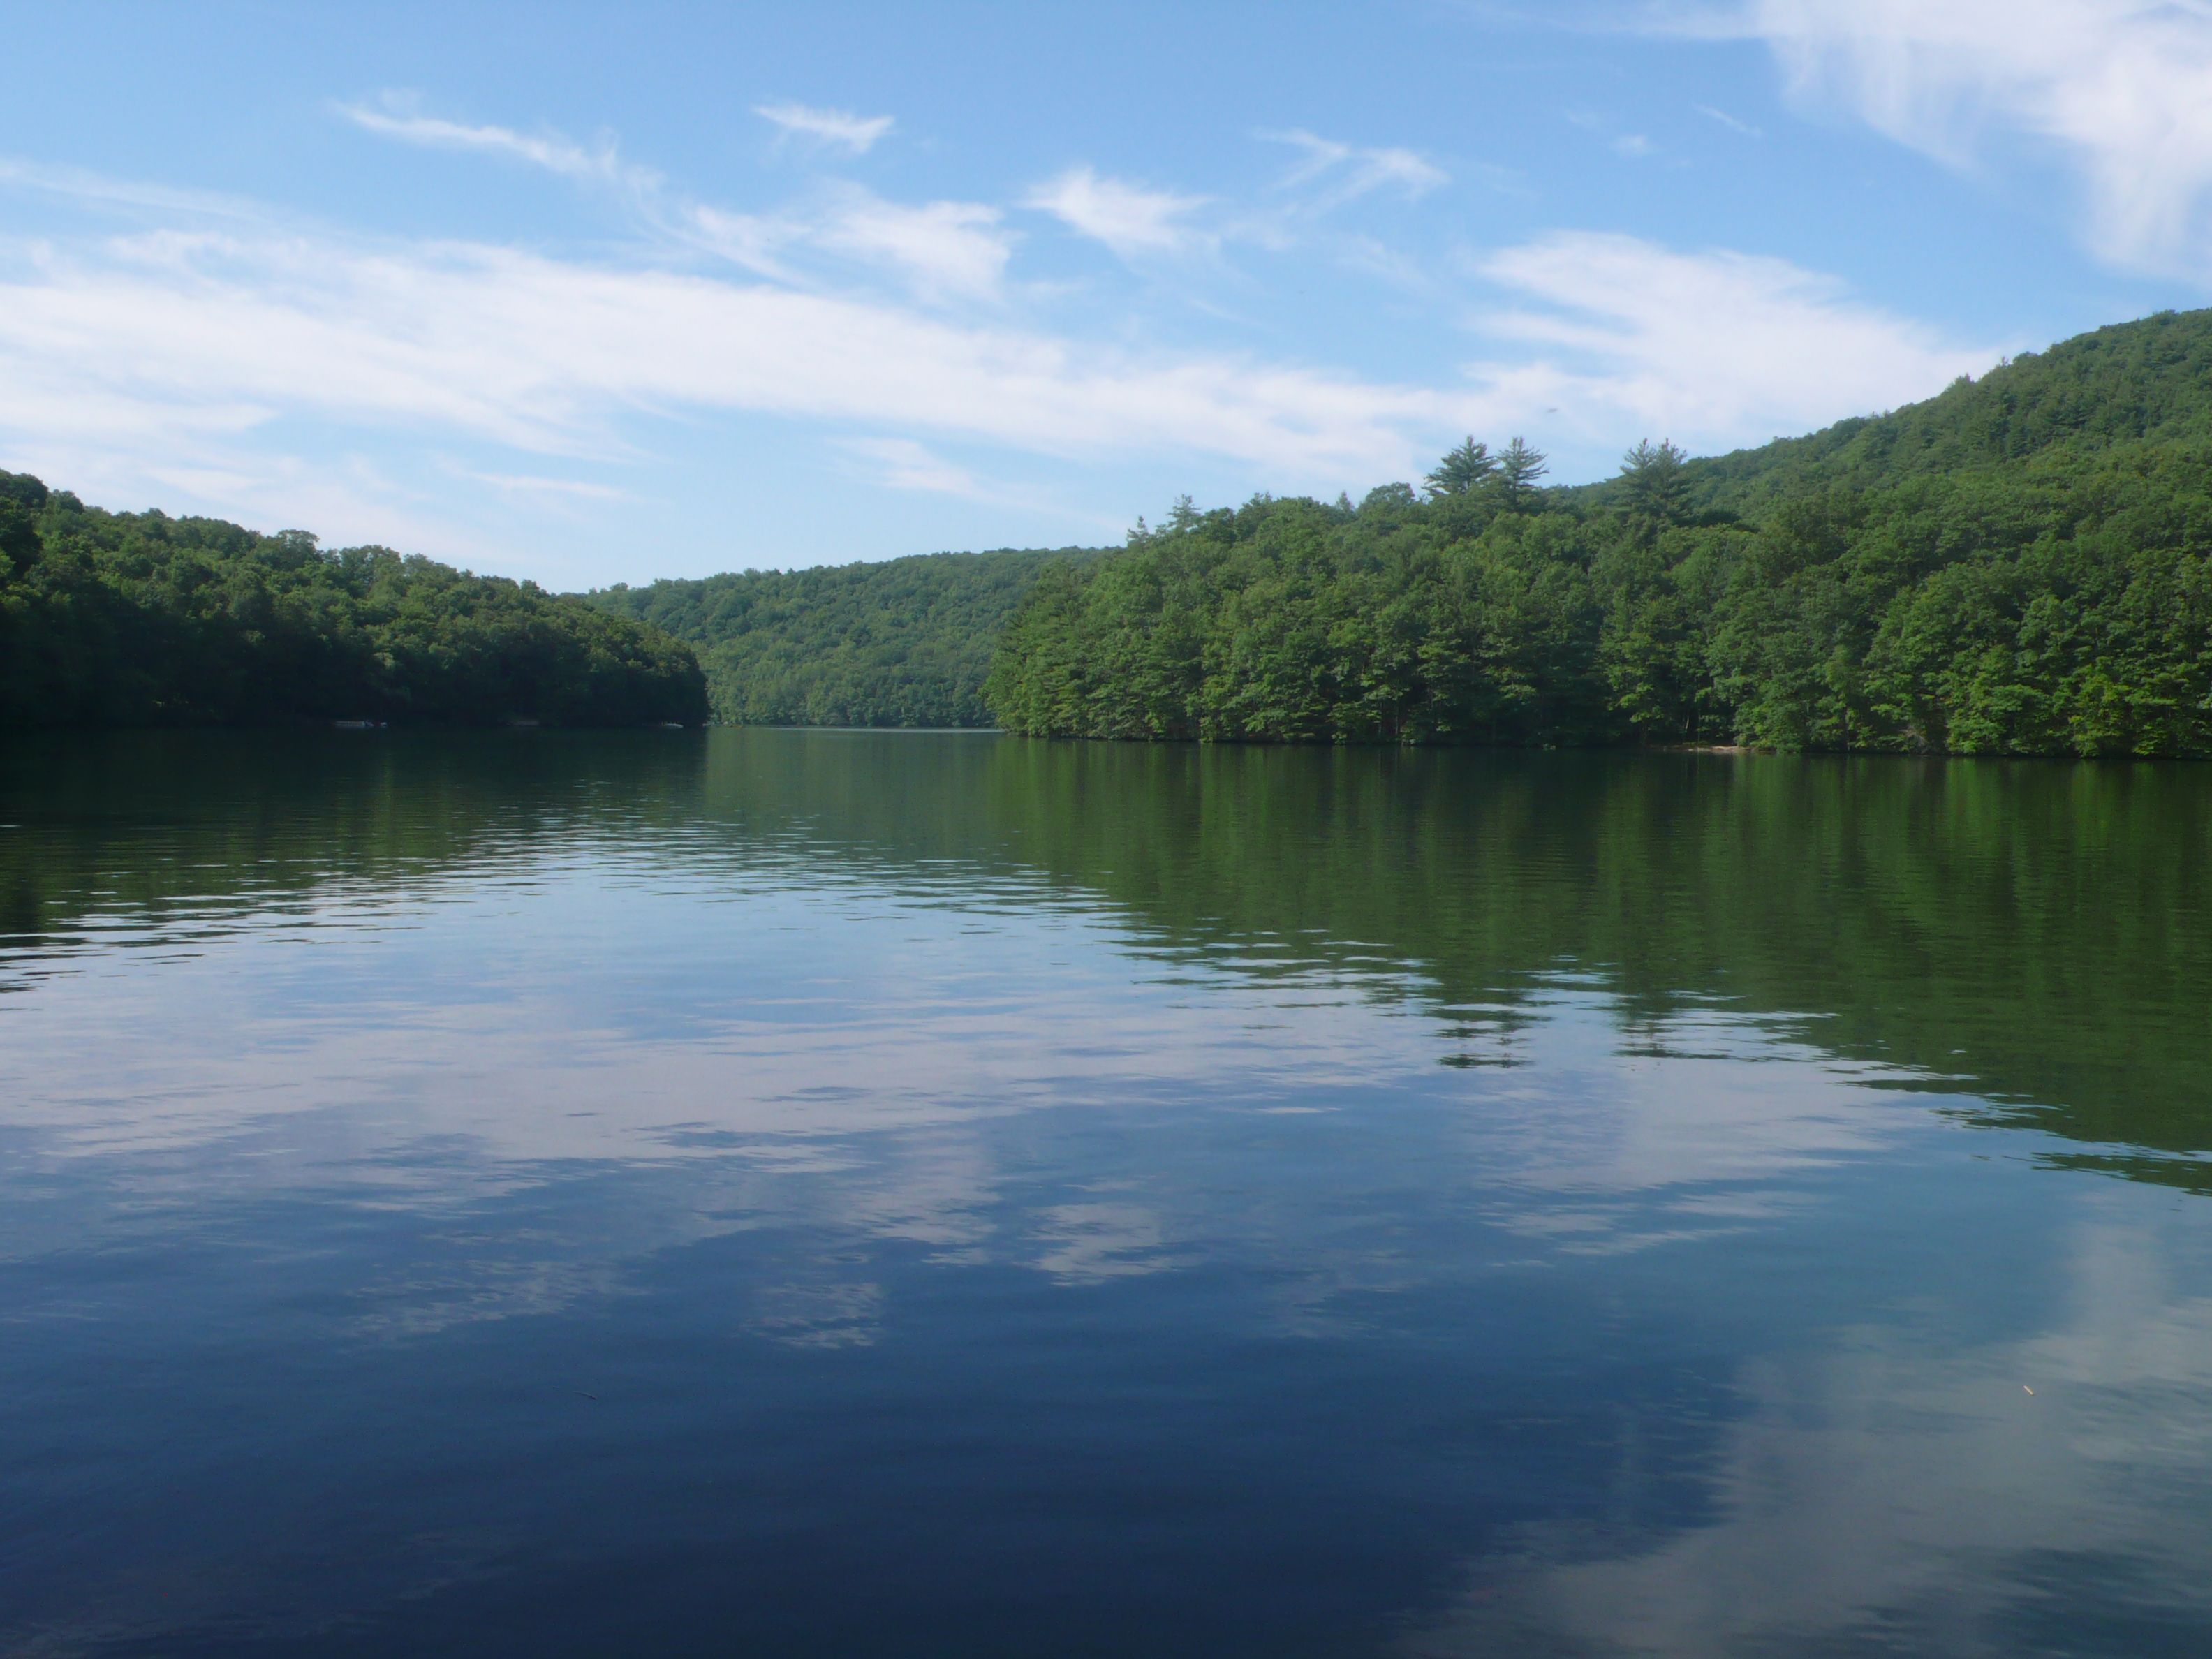 Single Family Home for Sale at Epic Lakefront Property on Lake Lillinonah 215 West Gilbert Road Southbury, Connecticut 06488 United States